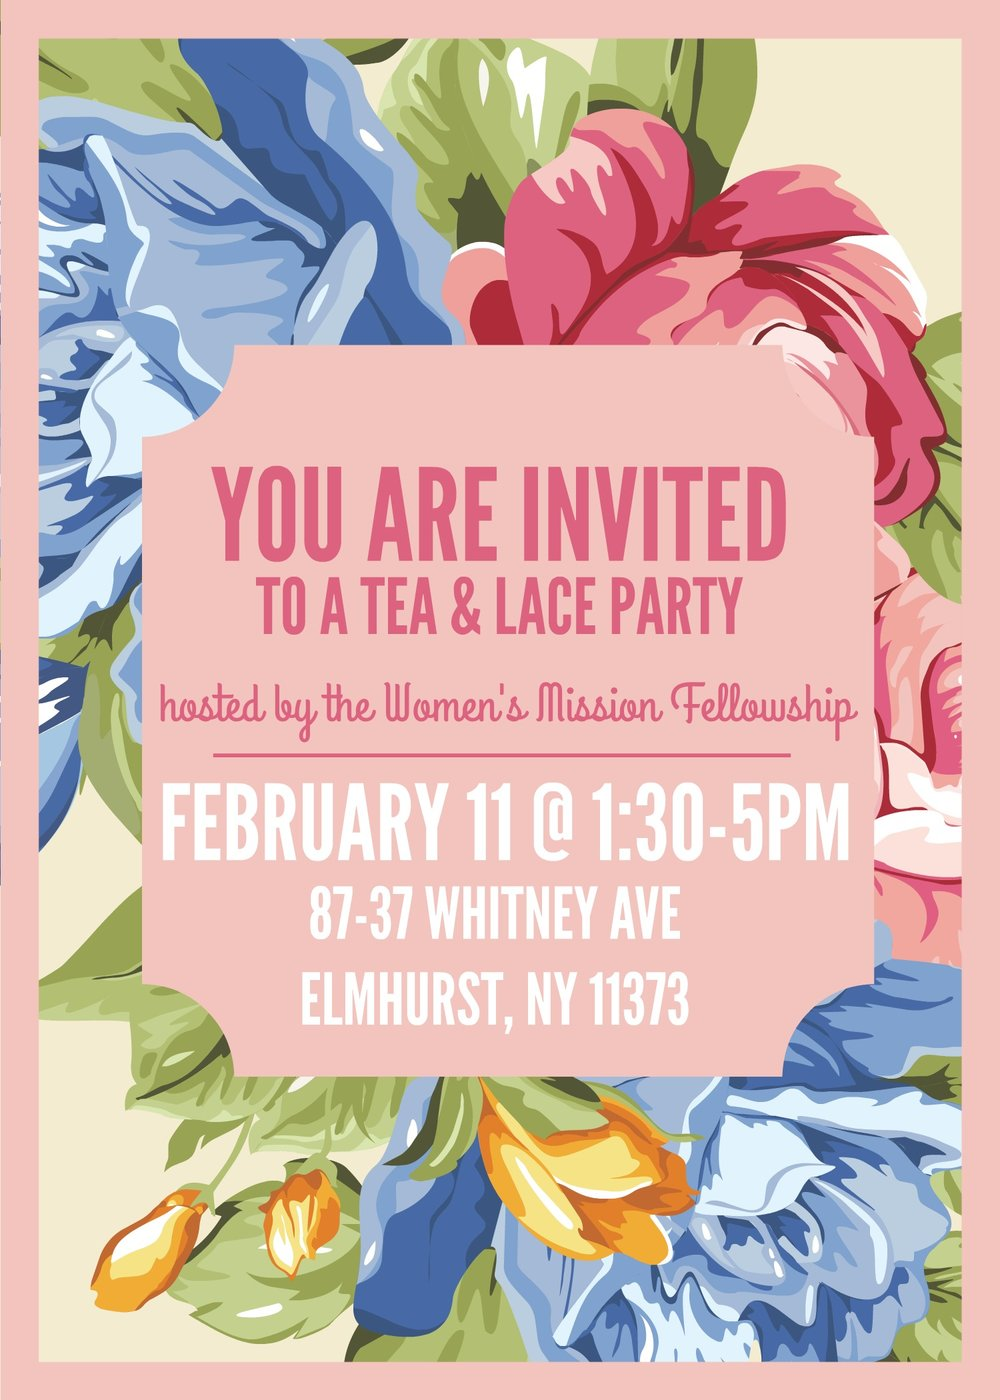 Please join the Women's Mission Fellowship for a spot of Tea, Fellowship, Fun & Games, Cookie craft and light snacks on Saturday, February 11, 2017 from 1:30 - 5:00 PM.  Wear Floral or Lace and look your shabby chic best! Also bring a tea cup and your favorite tea to exchange!